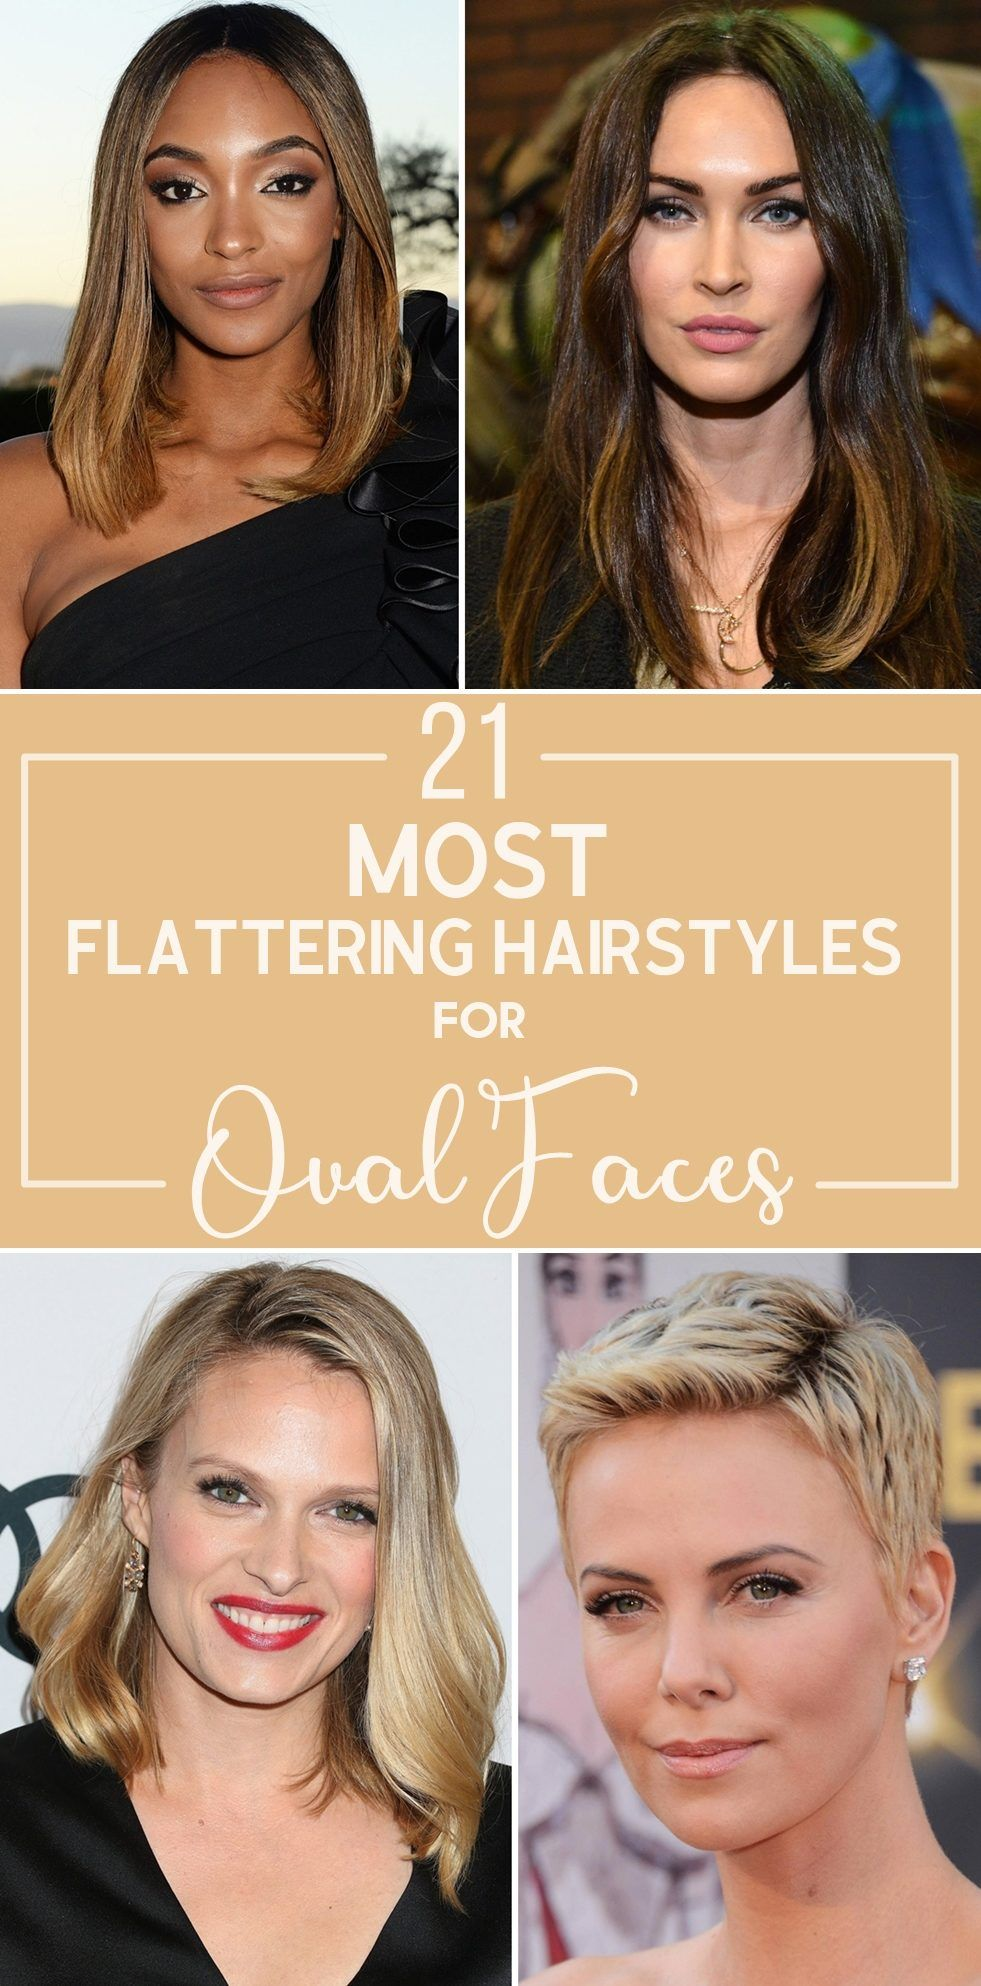 21 Most Flattering Hairstyles For Oval Faces Oval Face Hairstyles Oval Face Short Hair Face Shape Hairstyles